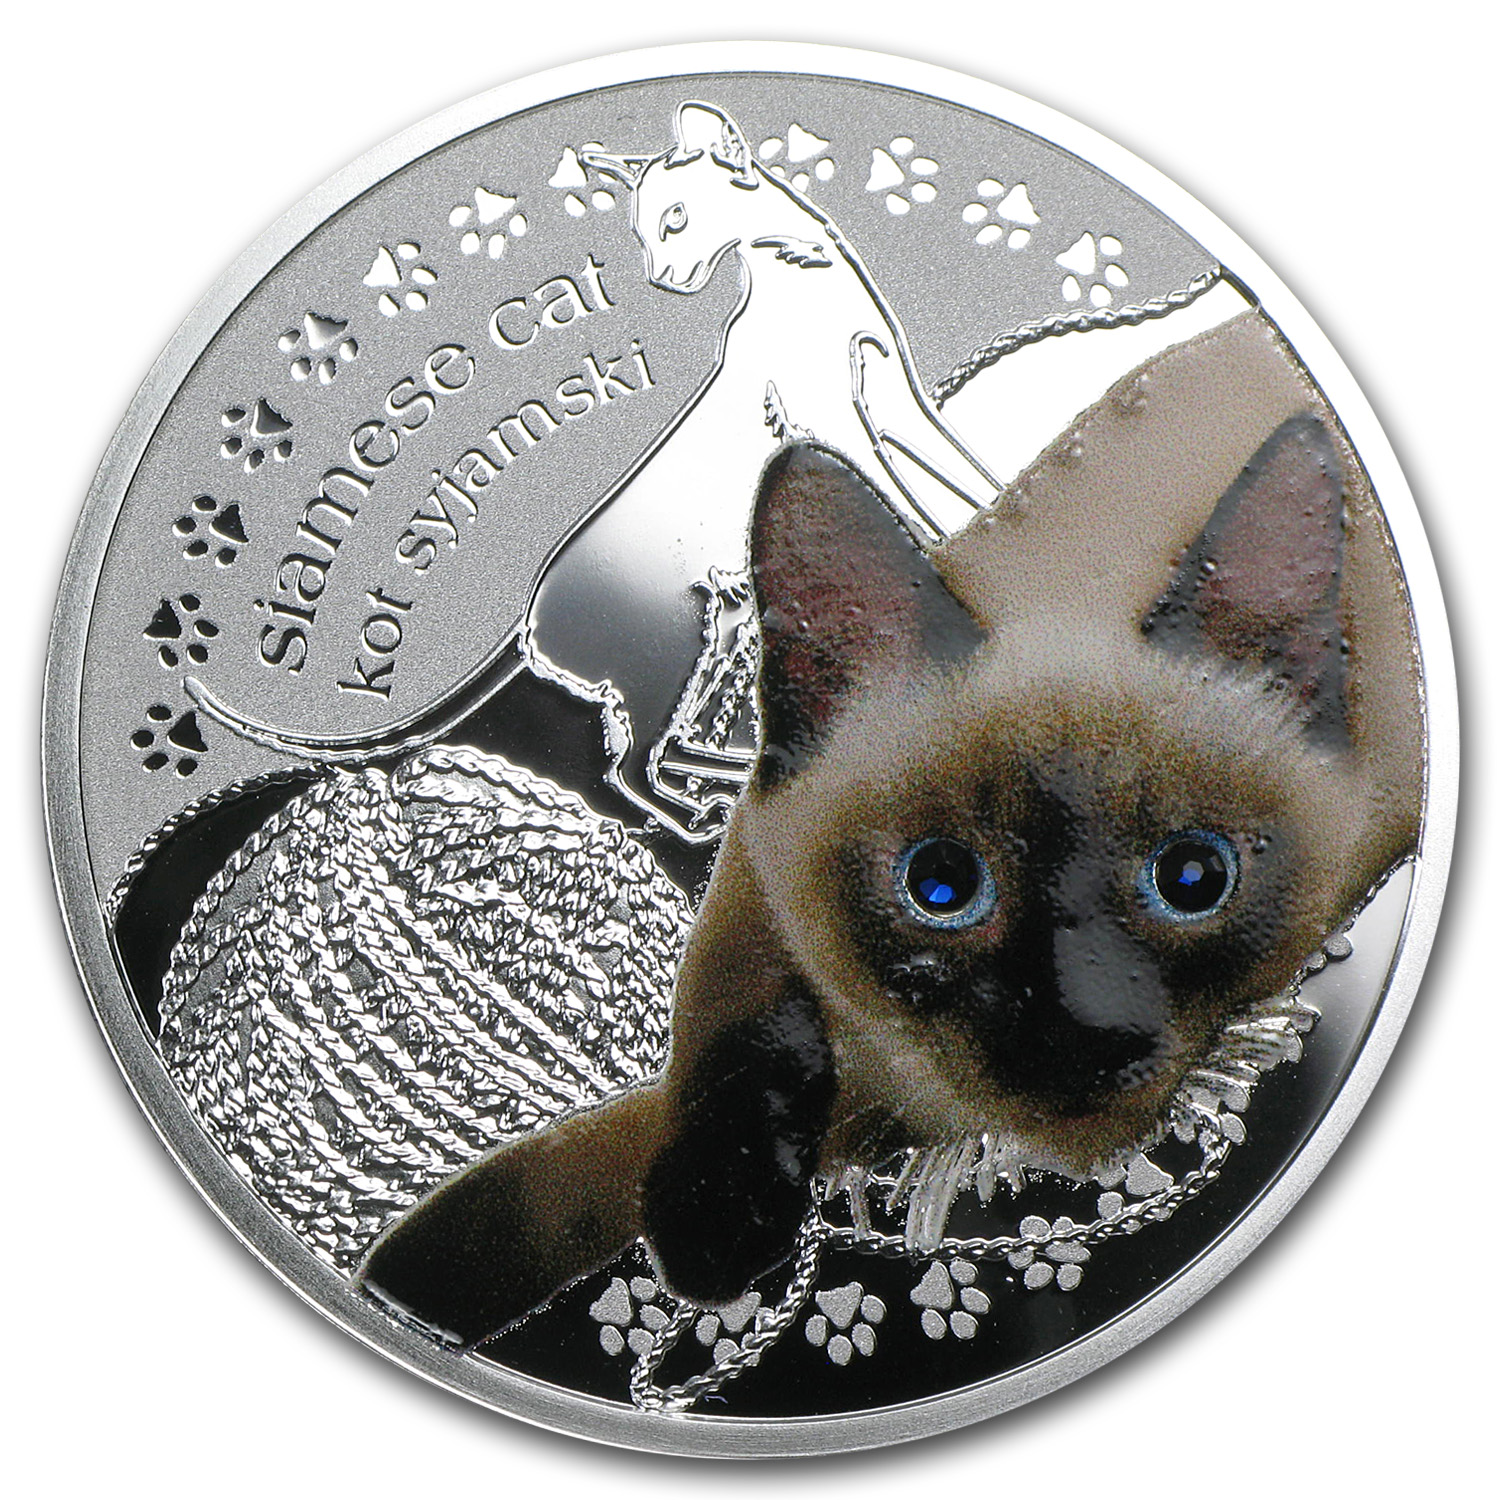 2014 Niue Proof Silver Man's Best Friends Cats Siamese Cat